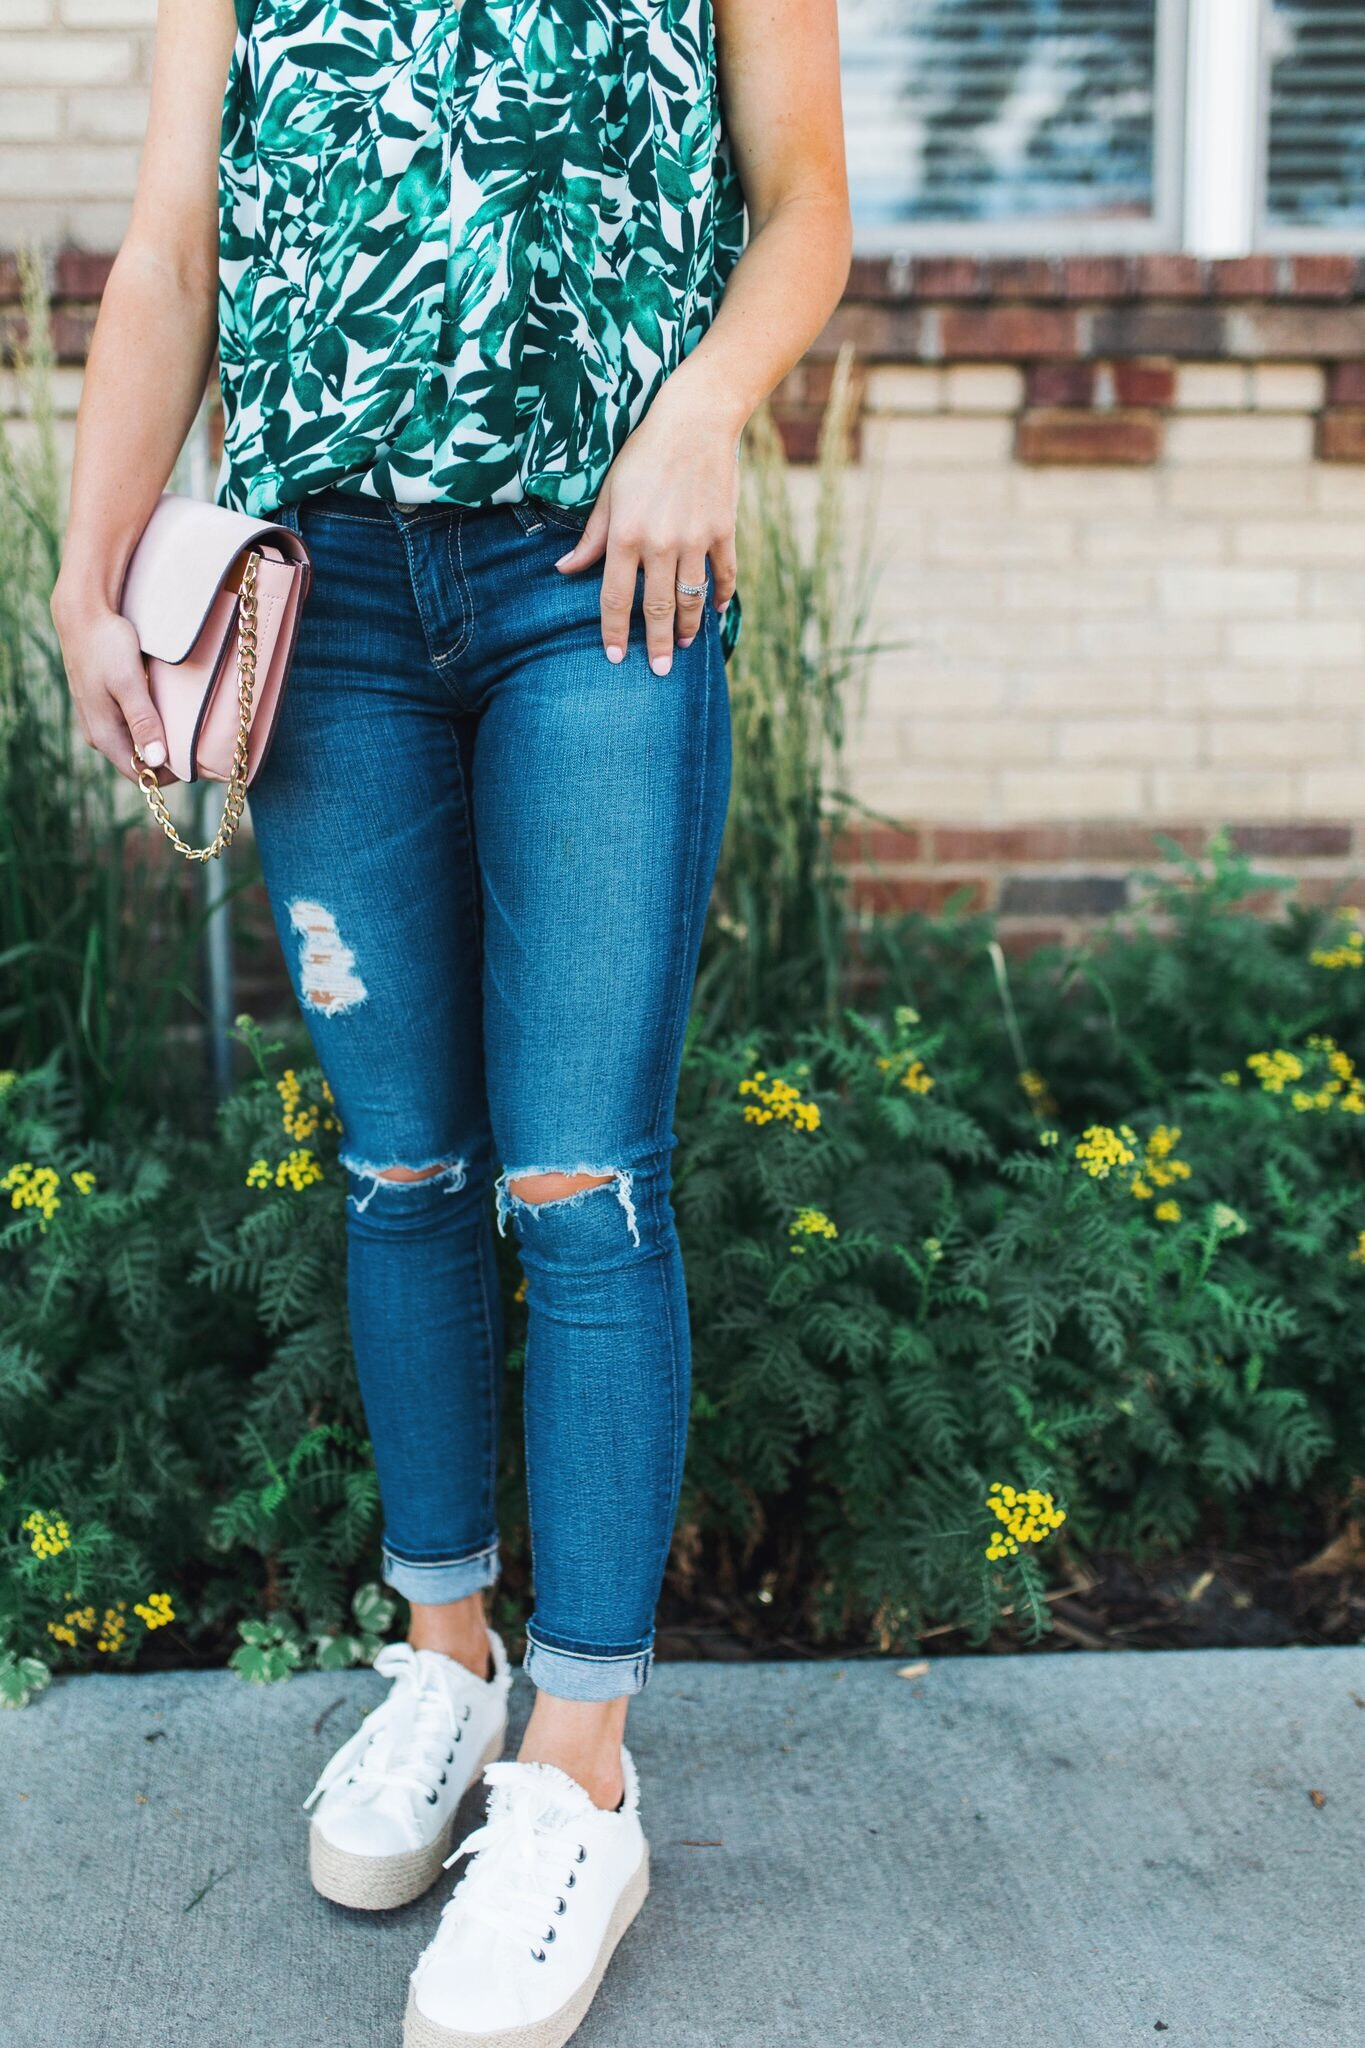 """<img src= five-summer-pieces-to-have-in-your-closet.jpg"""" alt= """"denver-fashion-blogger-wearing-summer-essential-pieces-to-have-in-your-closet-bold-patterned-tank-top-blouse-white-espadrille-platform-sneakers-ag-adriano-goldschmied-11-year-swapmeet-distressed-skinny-jeans-light-pink-chloe-faye-dupe-bag-detail-shot"""">"""